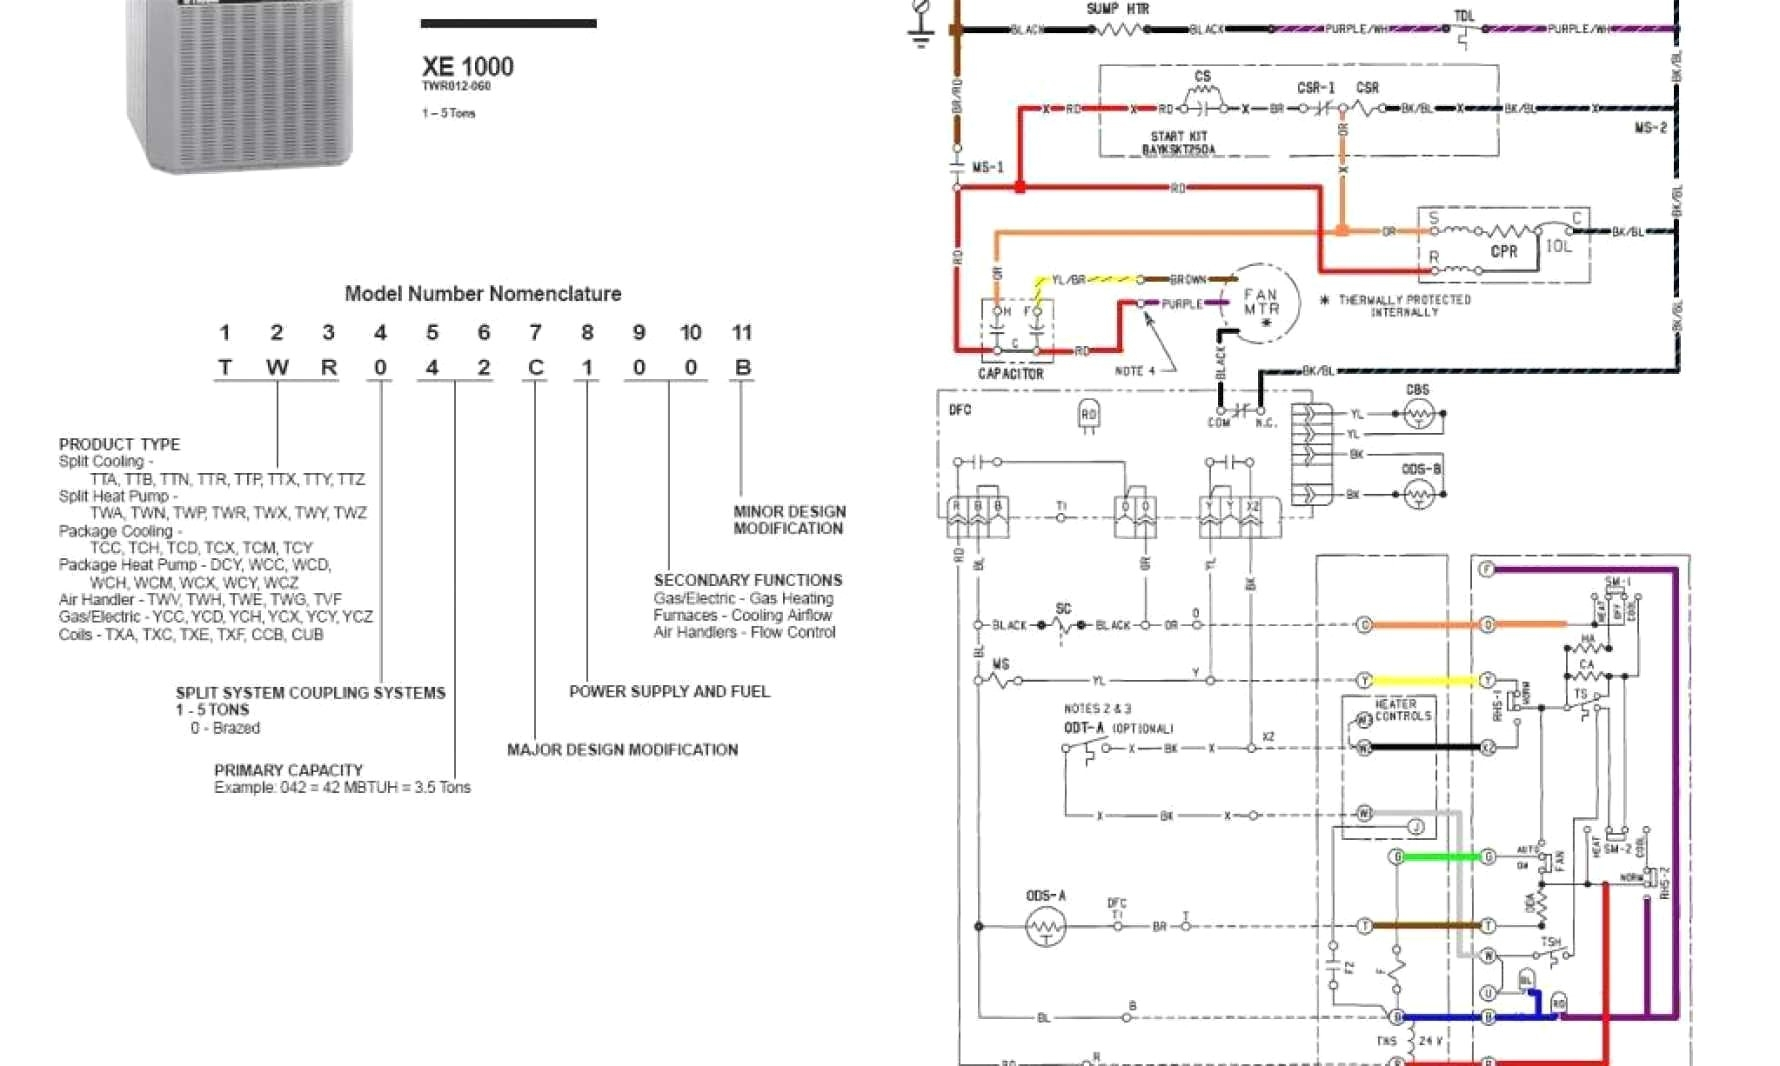 trane heat pump wiring schematic Download-Trane Thermostat Wiring Diagram How To Program Trane Thermostat 6-s